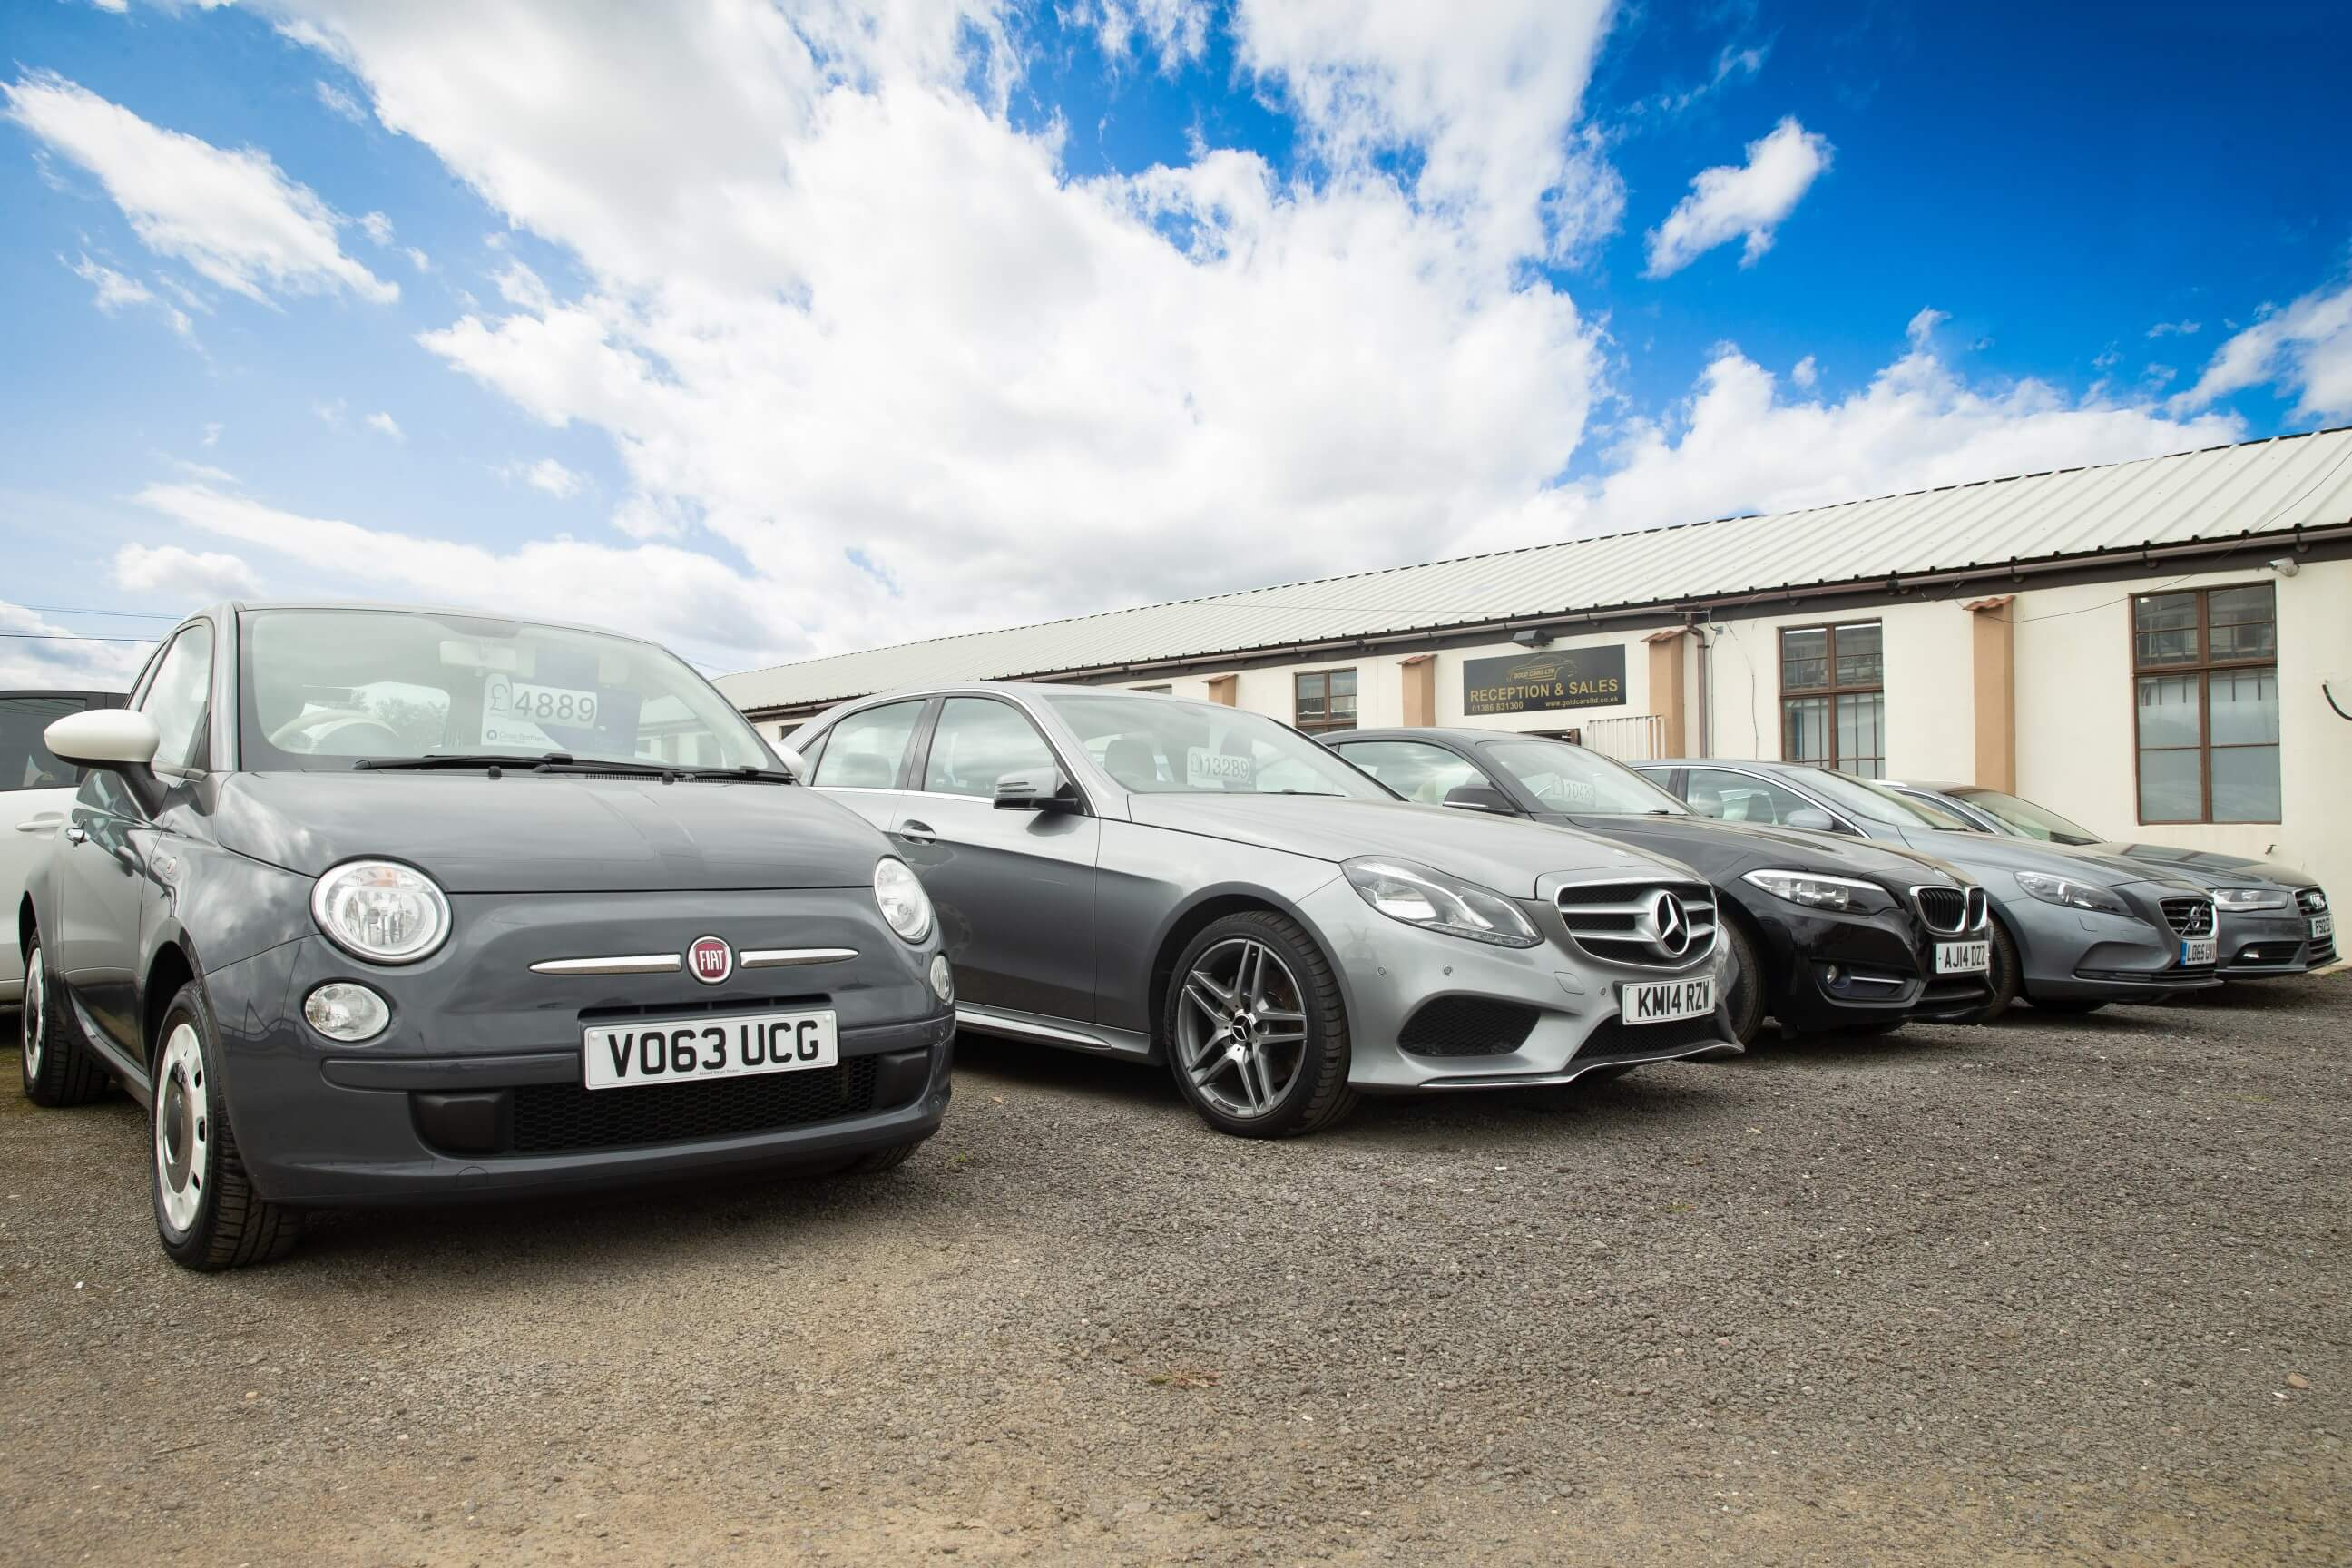 Welcome To Gold Cars Limited Used Cars For Sale In Evesham - Gold Cars Ltd